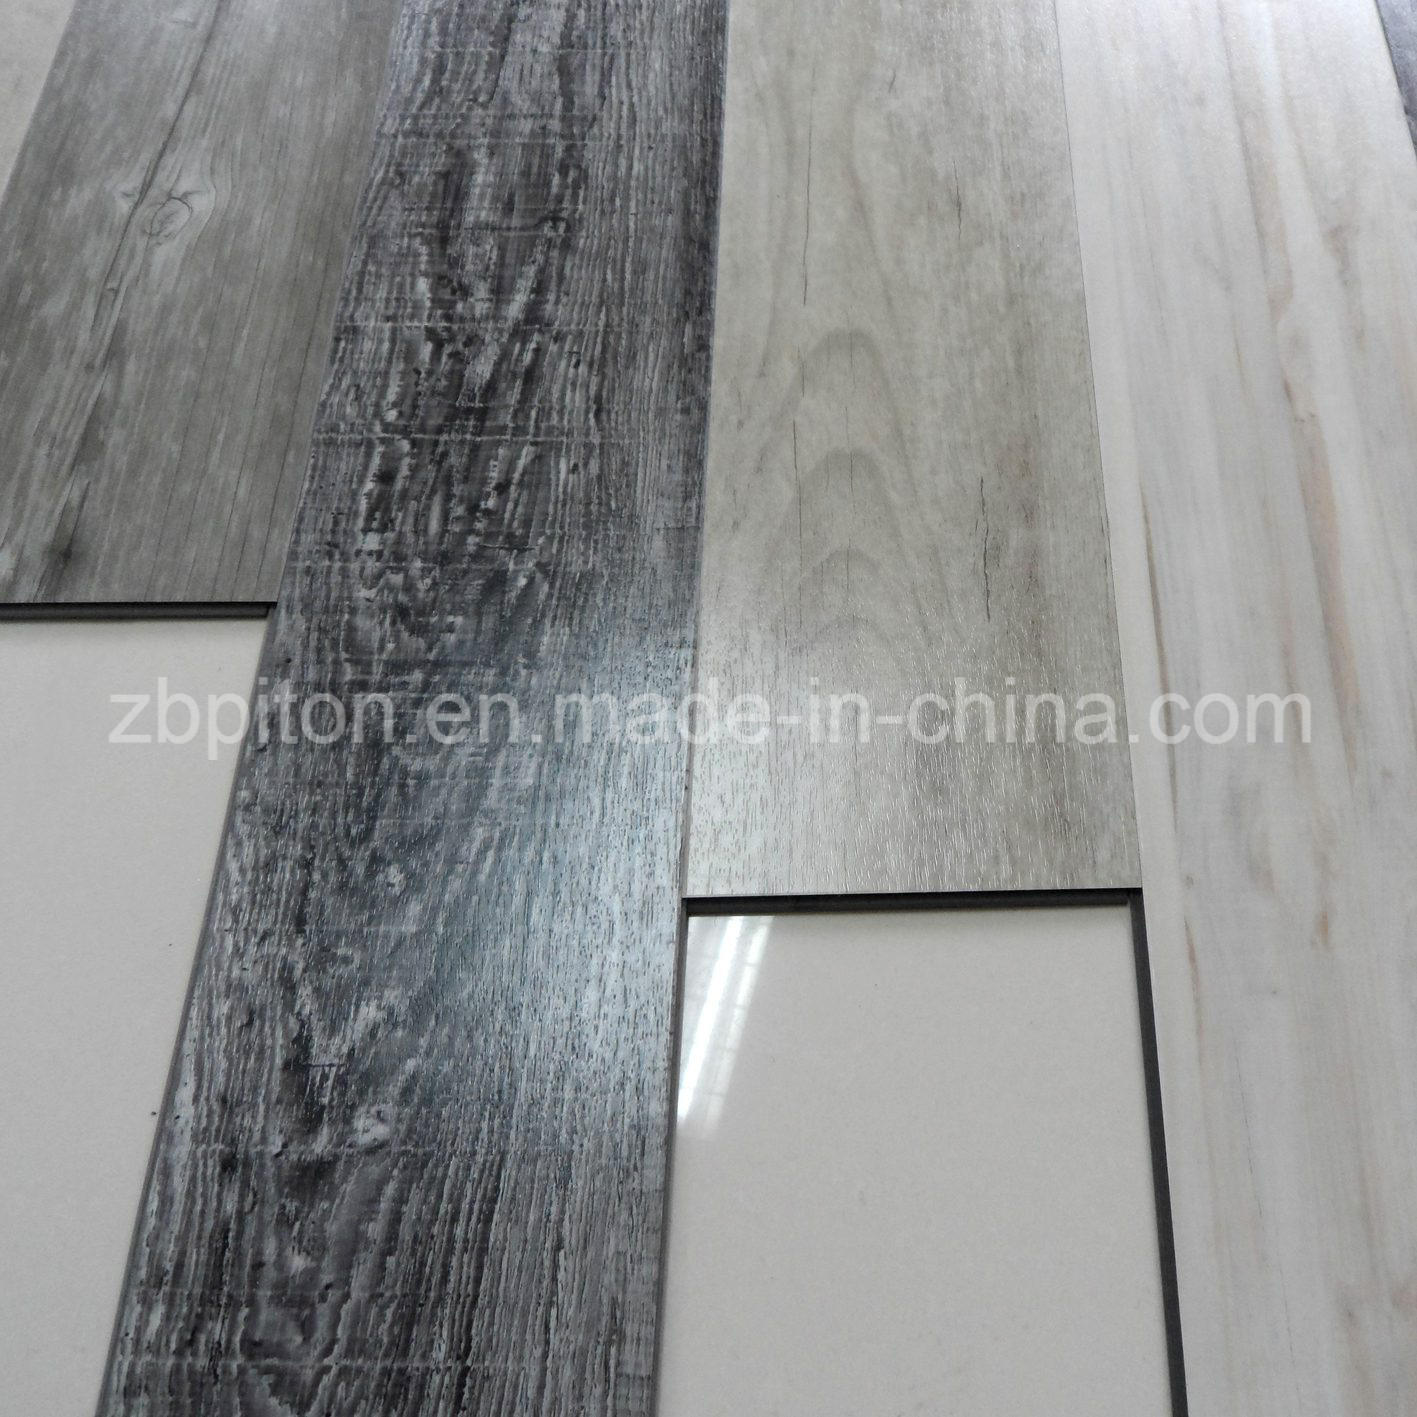 China wood look pvc floor tile in good quality and price photos wood look pvc floor tile in good quality and price dailygadgetfo Image collections